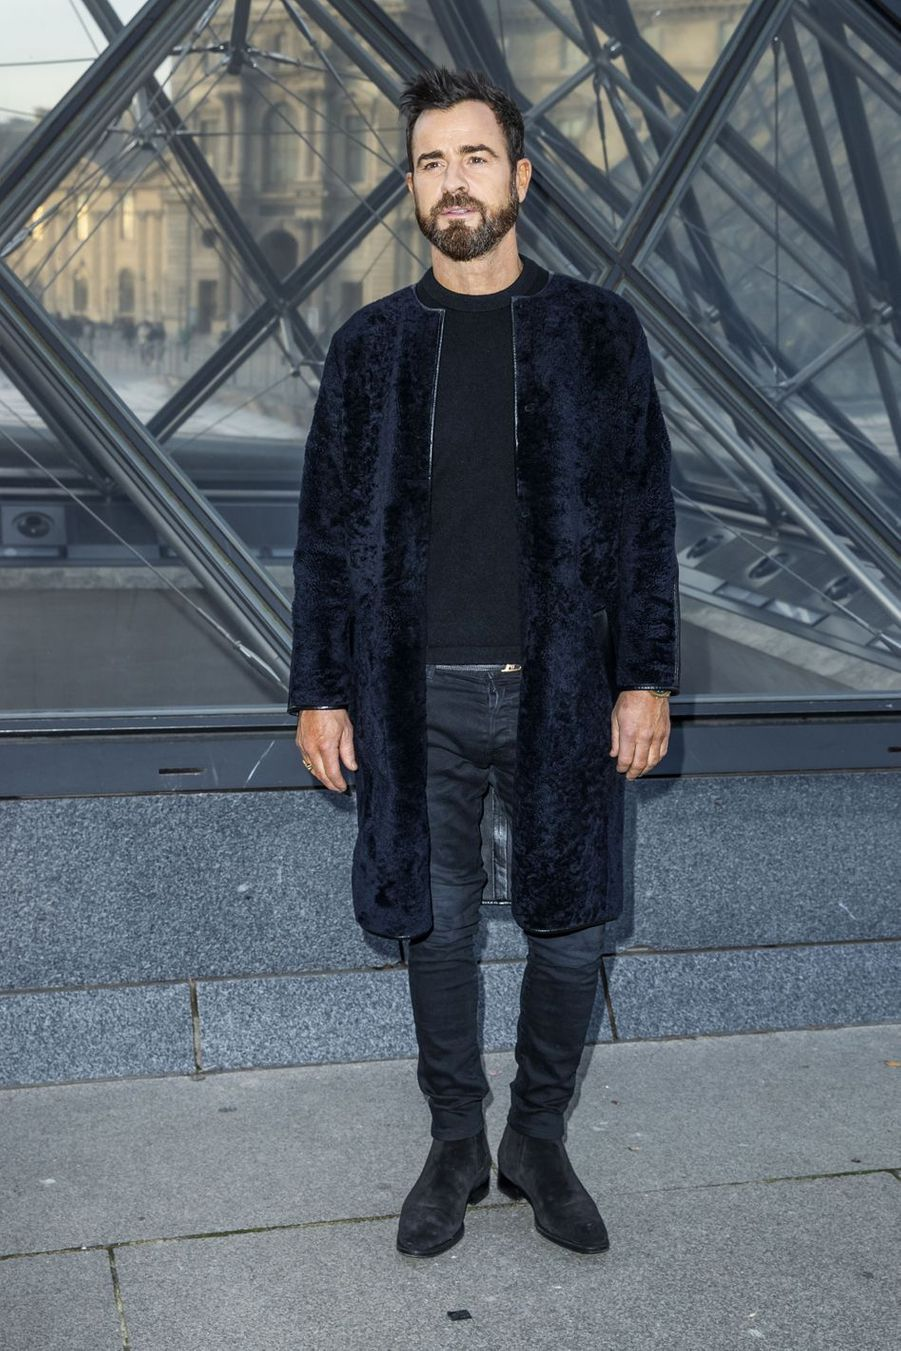 Justin Theroux au défilé Louis Vuitton à Paris, le 5 mars 2019